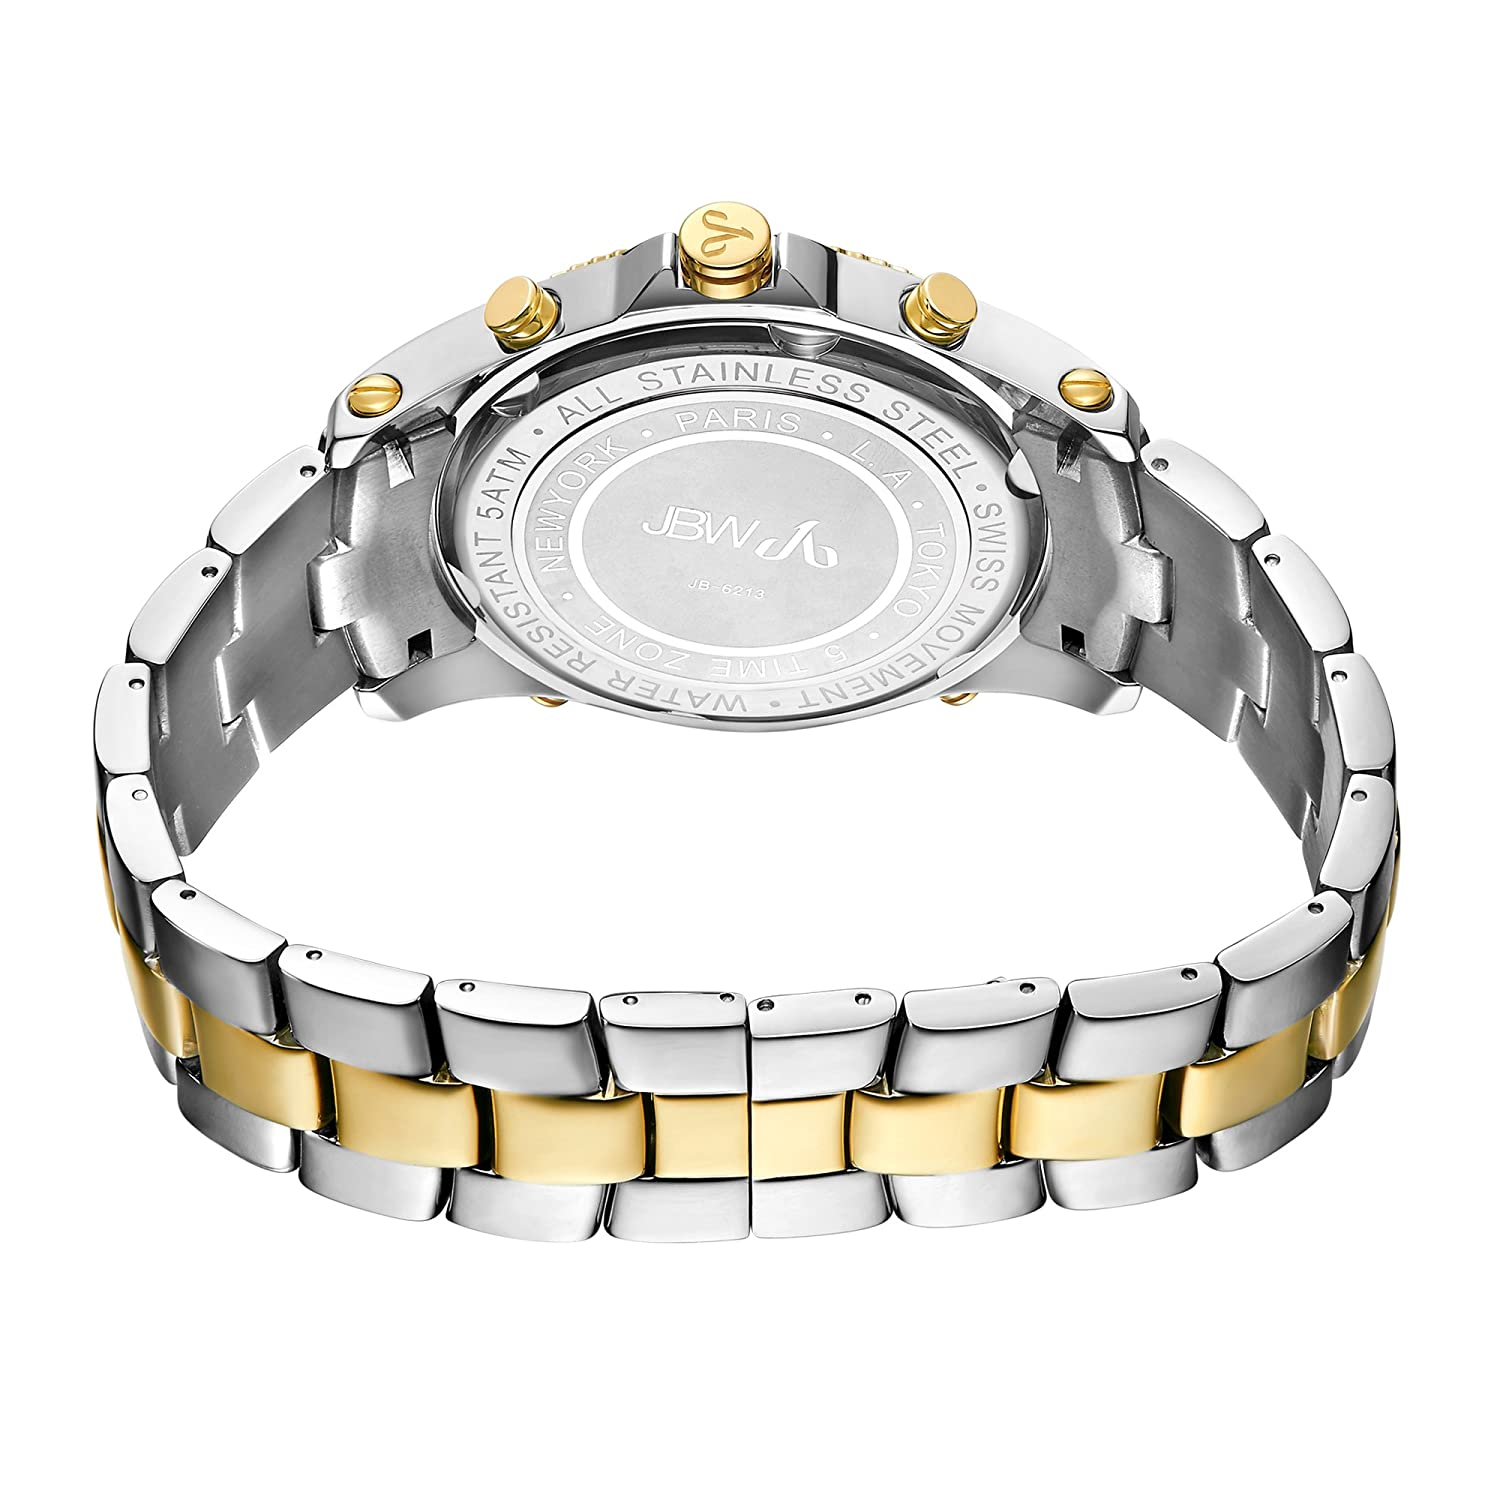 3a01bc504af Amazon.com  JBW Luxury Men s Jet Setter 2.34 Carat Diamond Wrist Watch with  Stainless Steel Link Bracelet  Watches